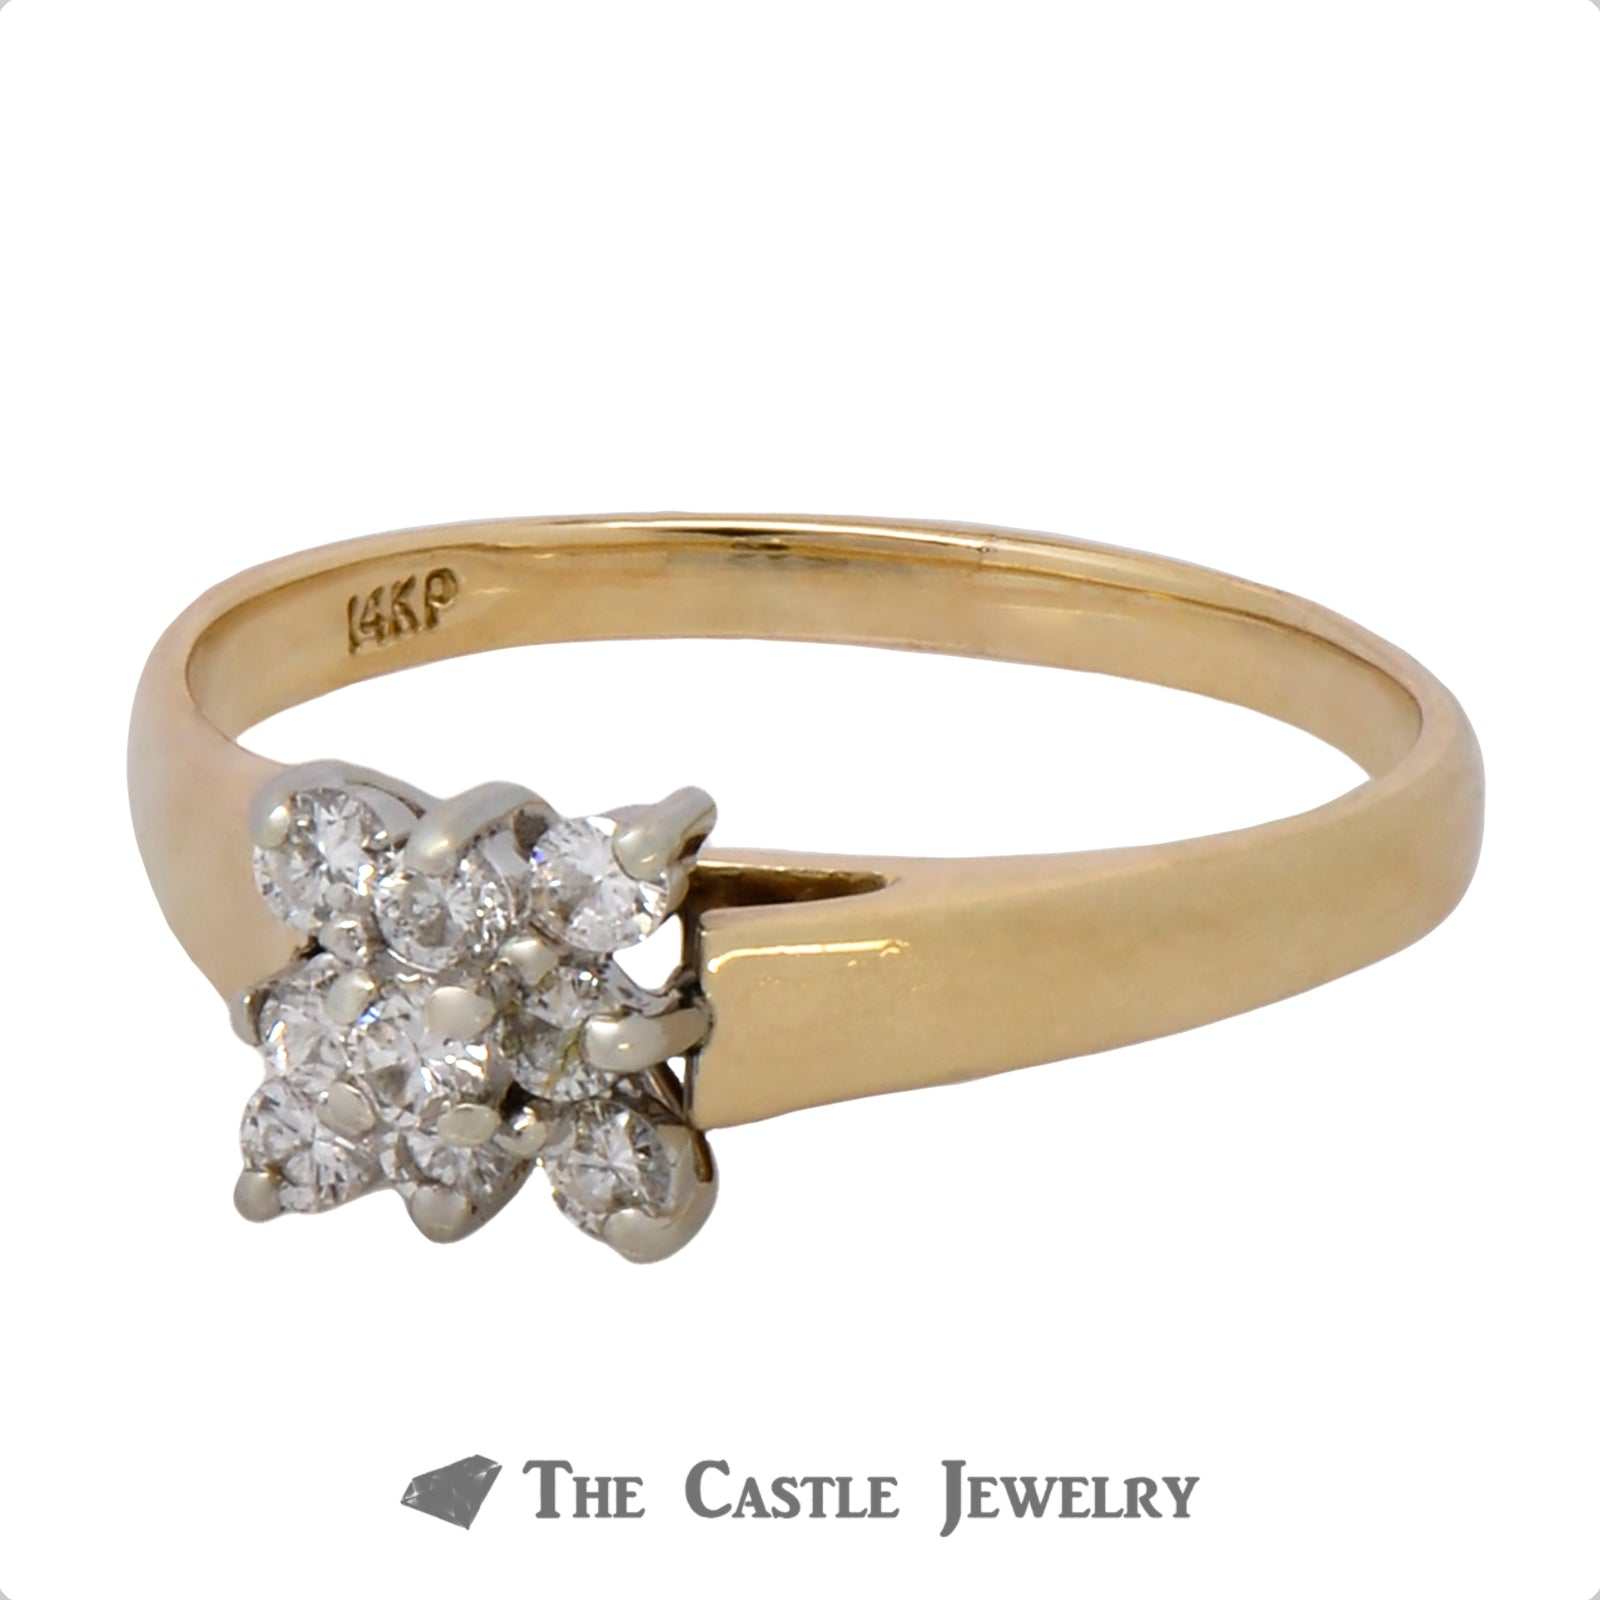 Square Diamond Shaped Cluster Ring in 14k Yellow Gold-2